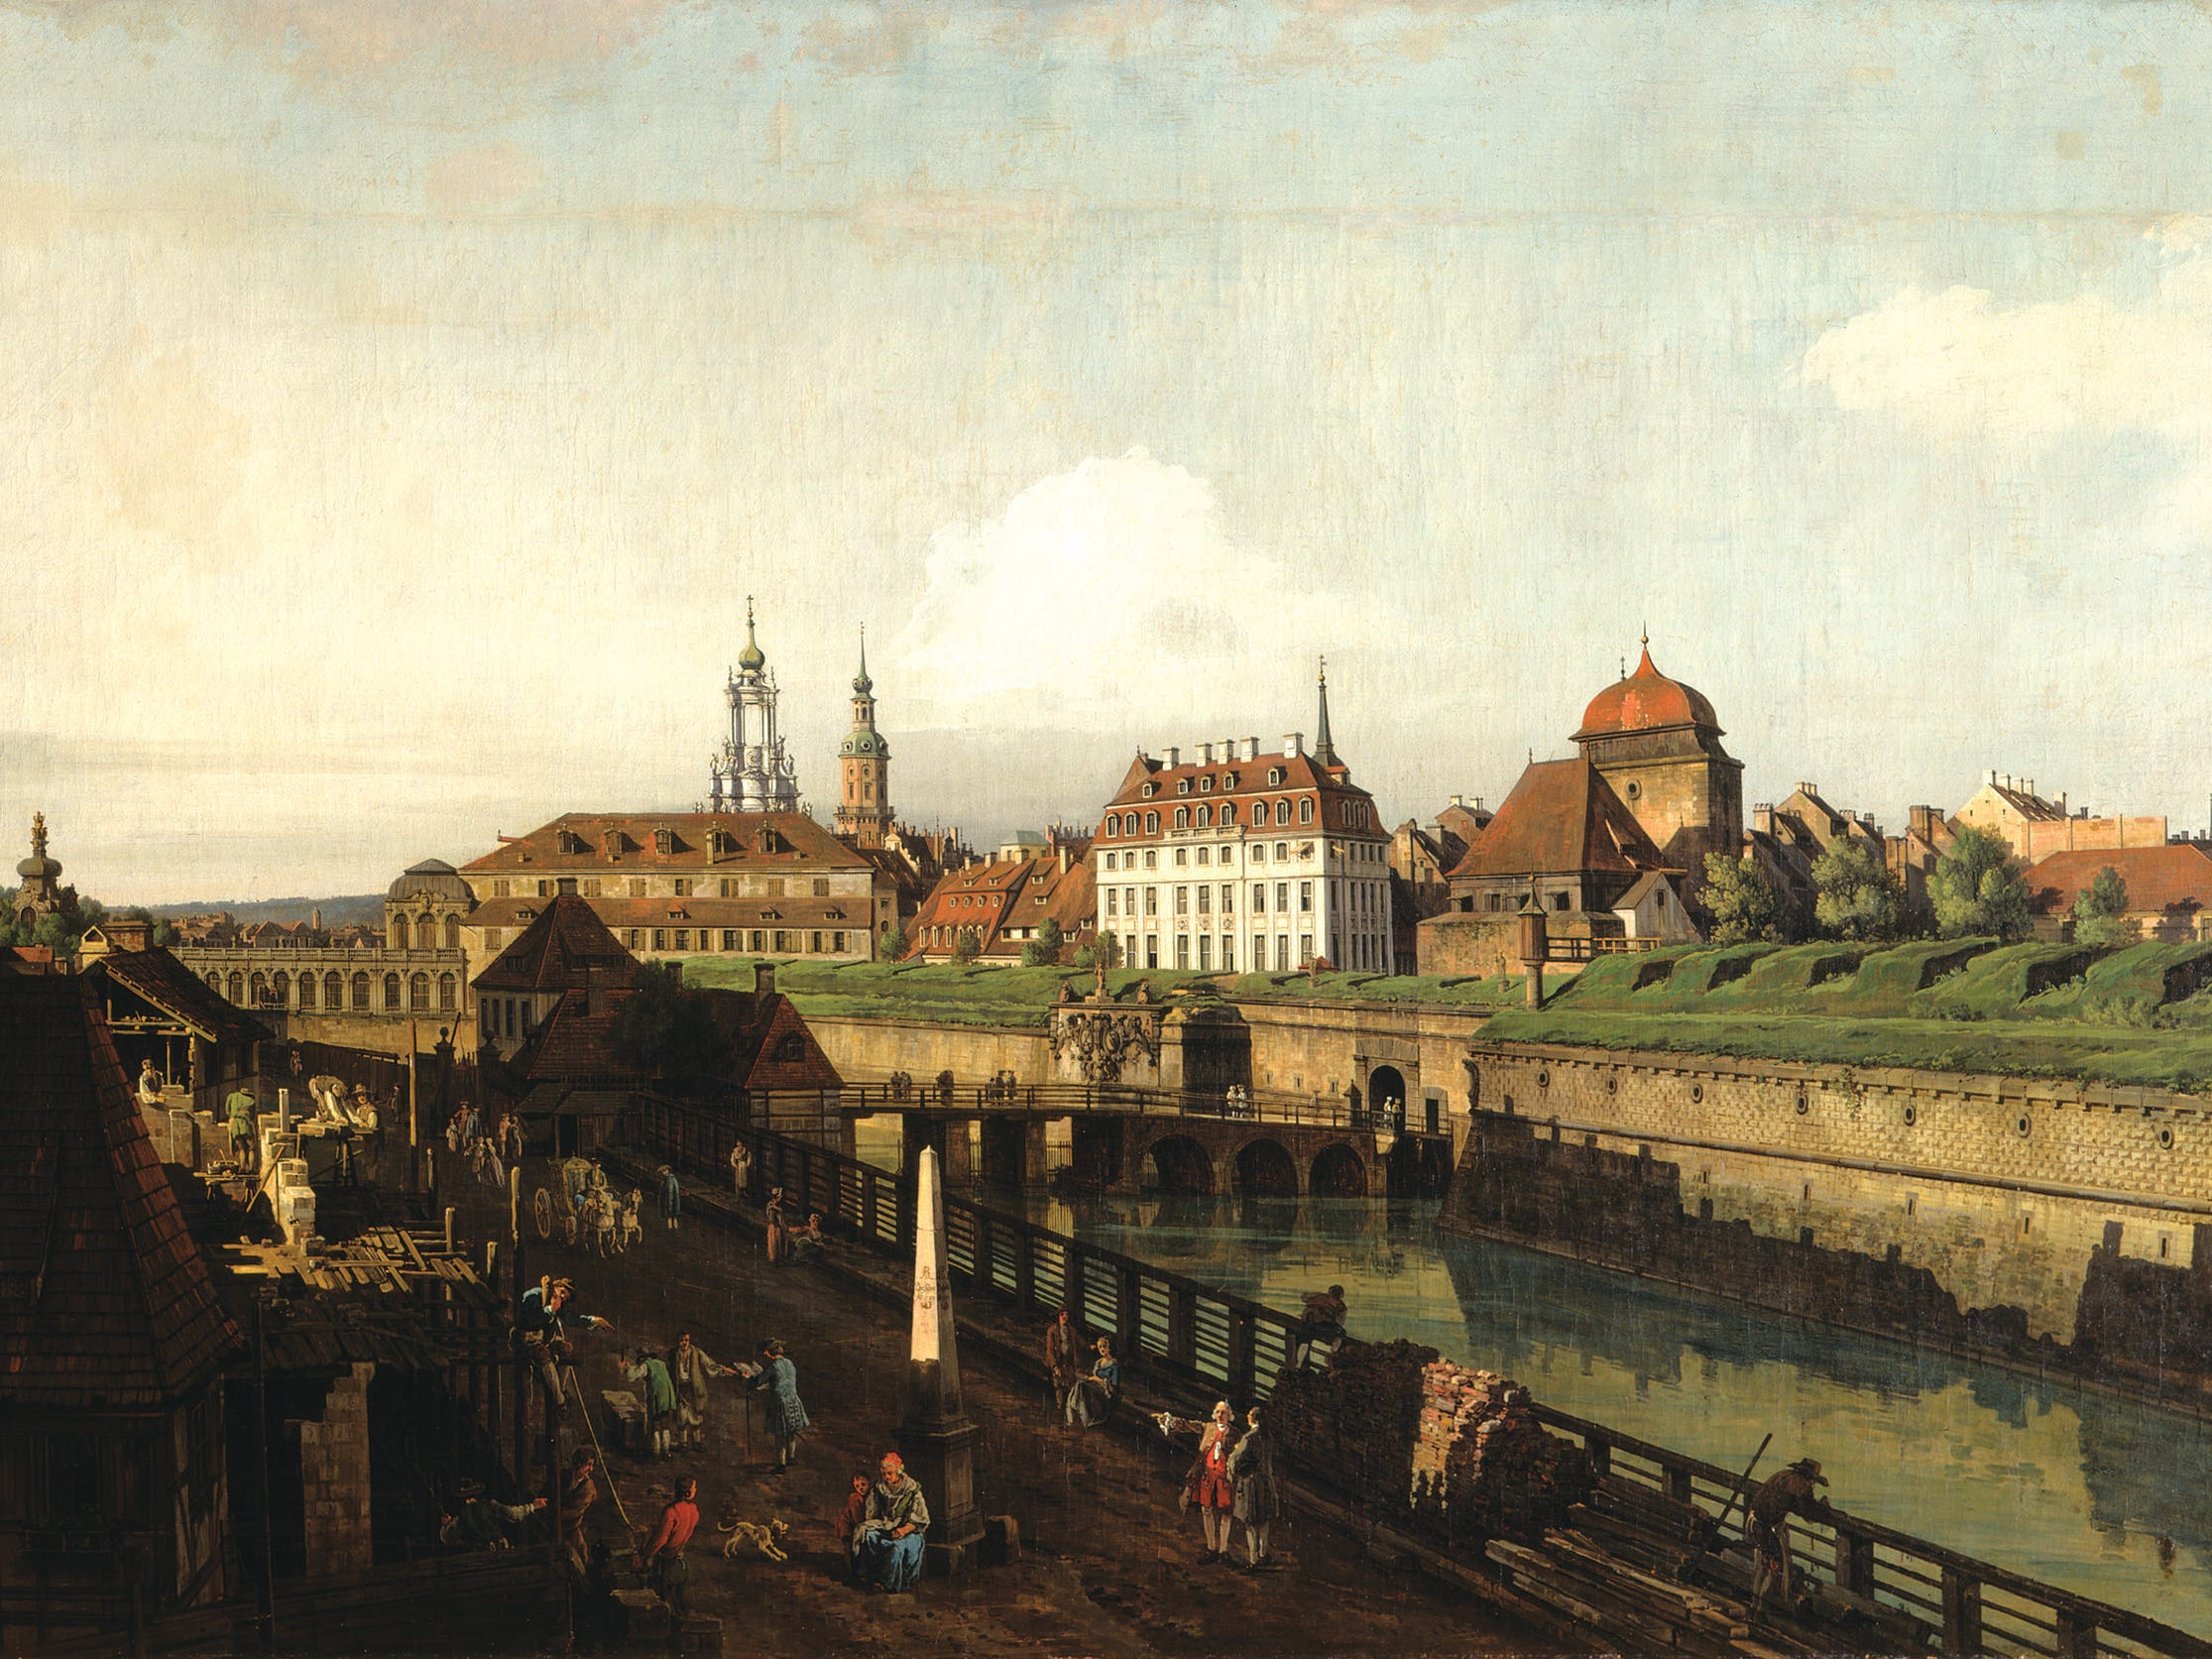 Thanks to a loan from the Gemäldegalerie of the Dresden State Art Collections, Bernardo Bellotto's work can be seen in Fort Worth, Texas, this winter.